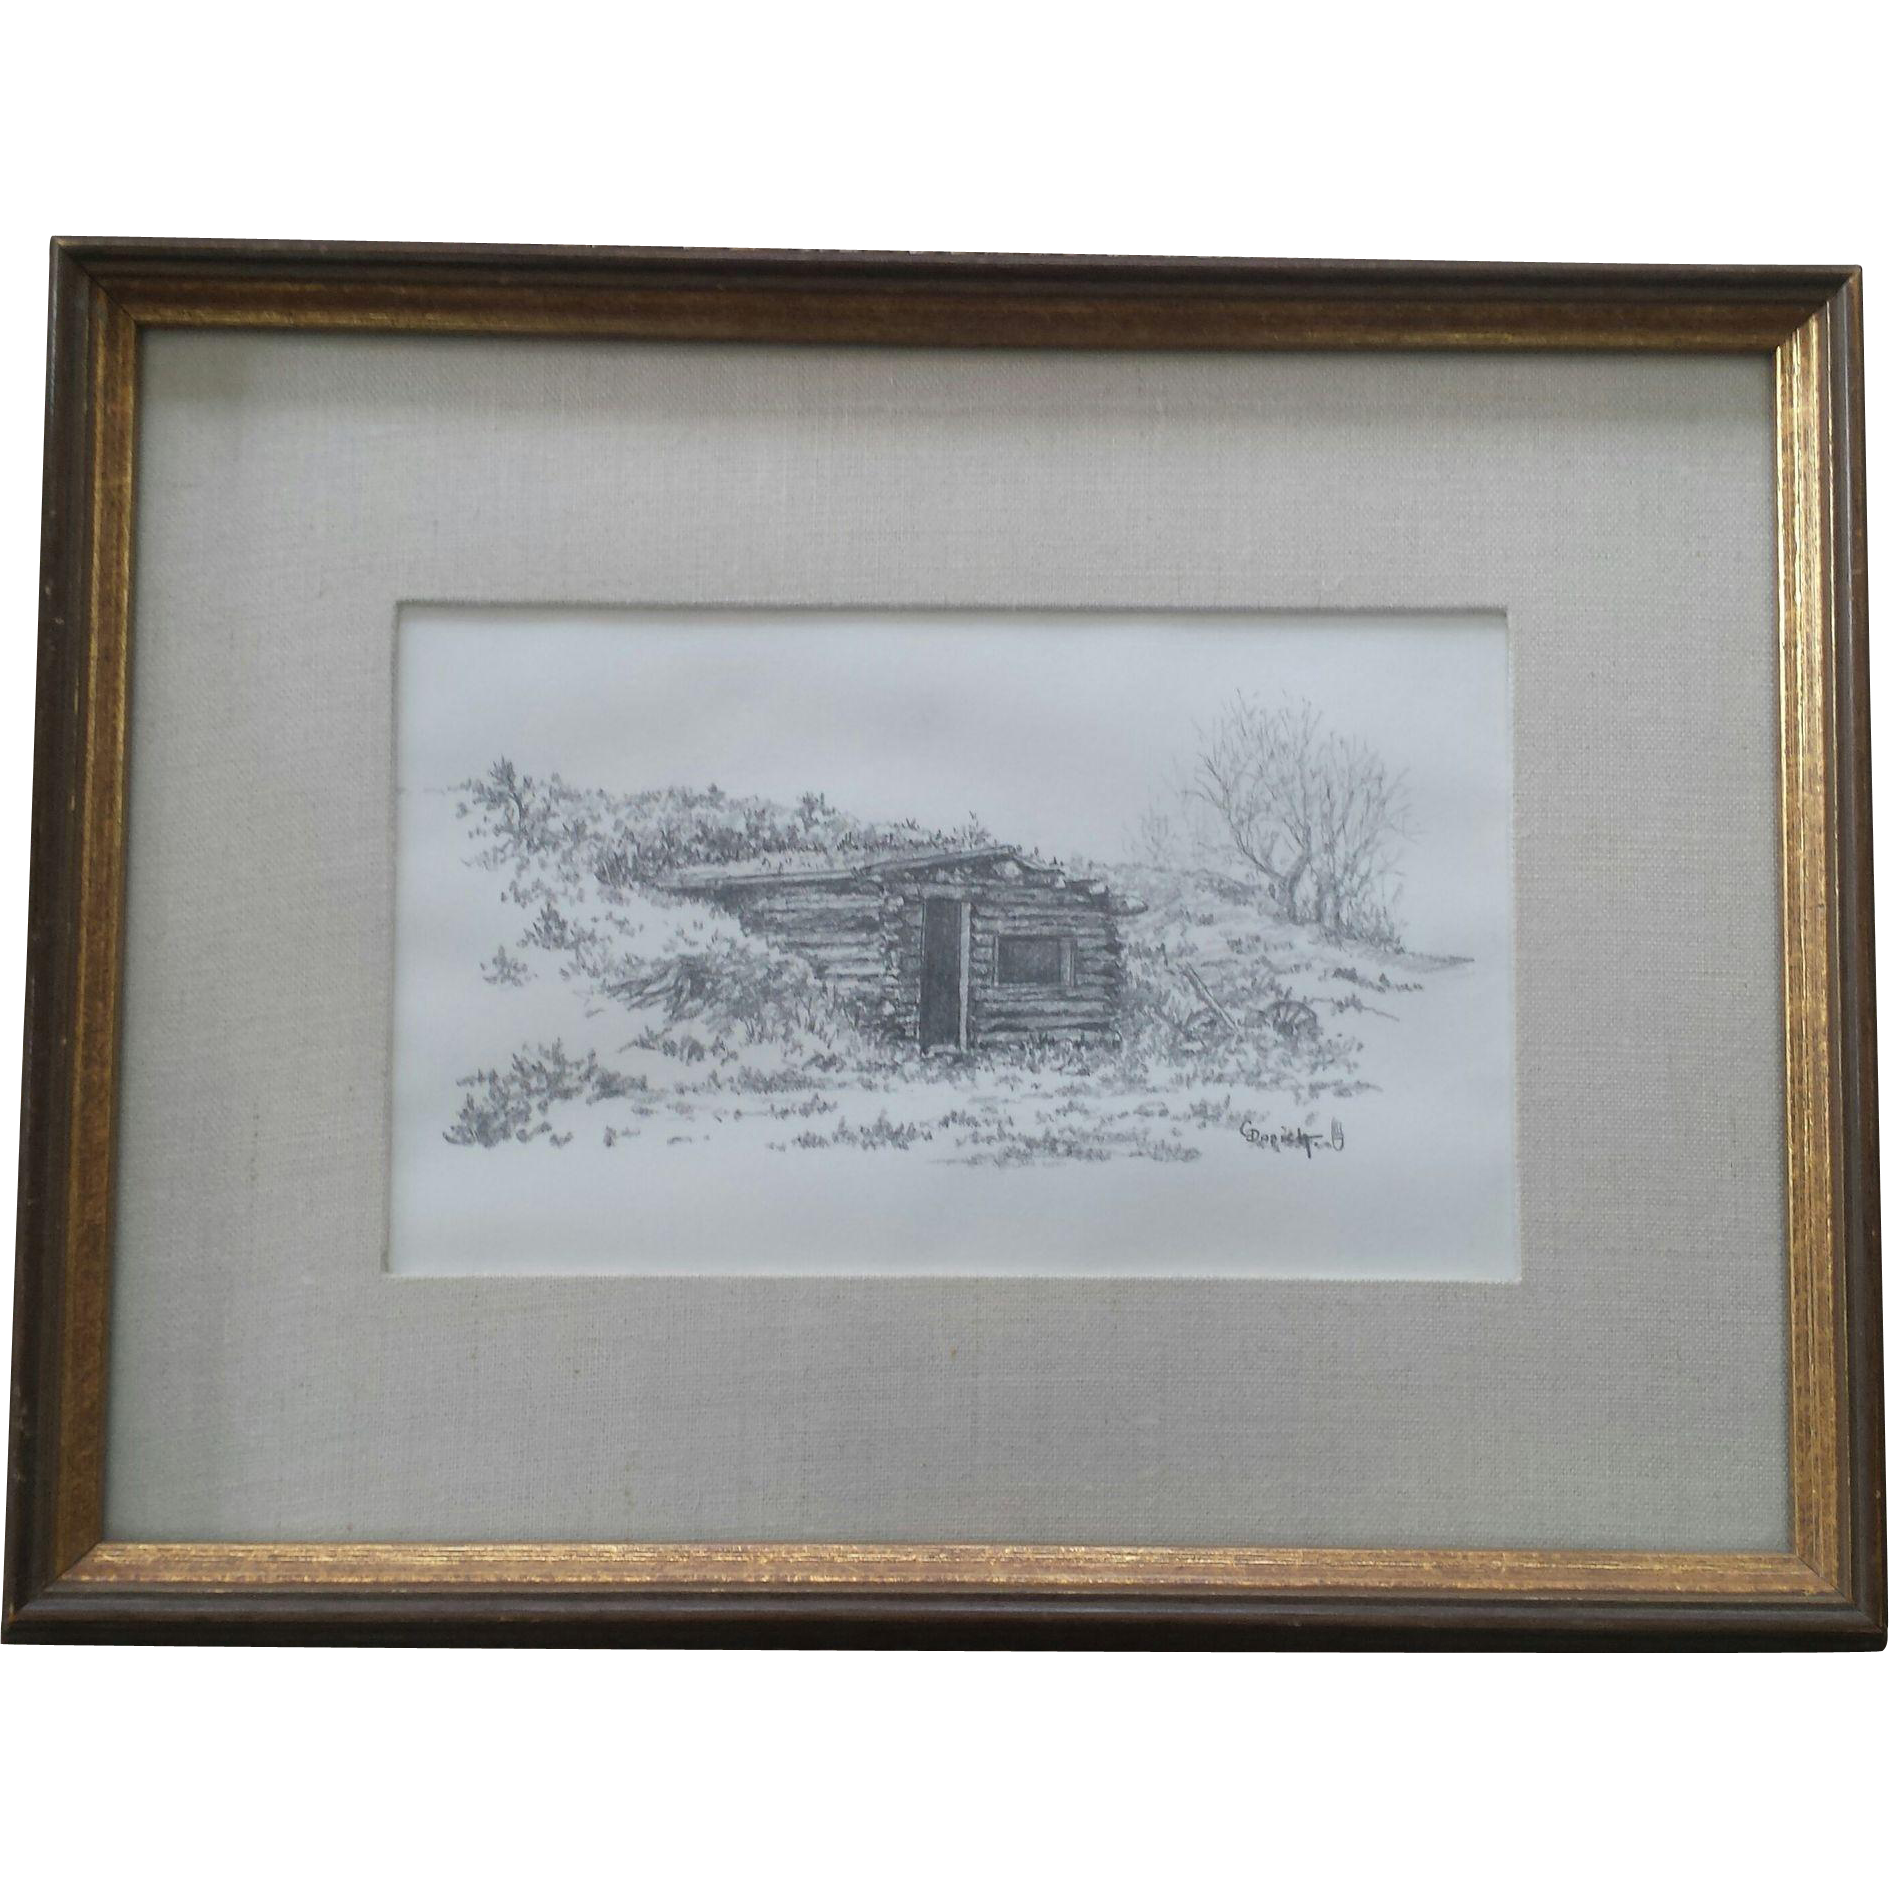 FIne George Dabich Pencil Drawing - The Dugout